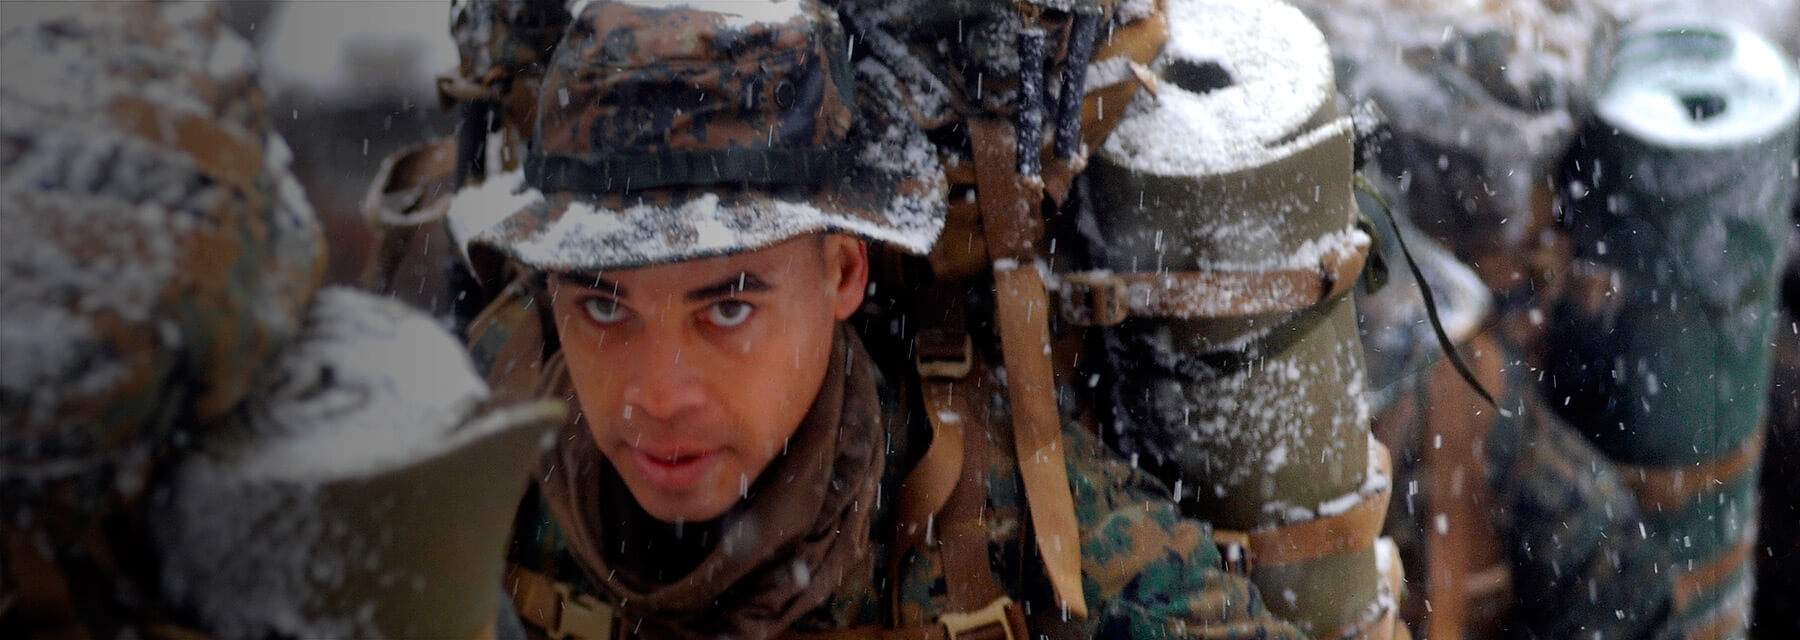 A Marine Officer marches as snow falls.